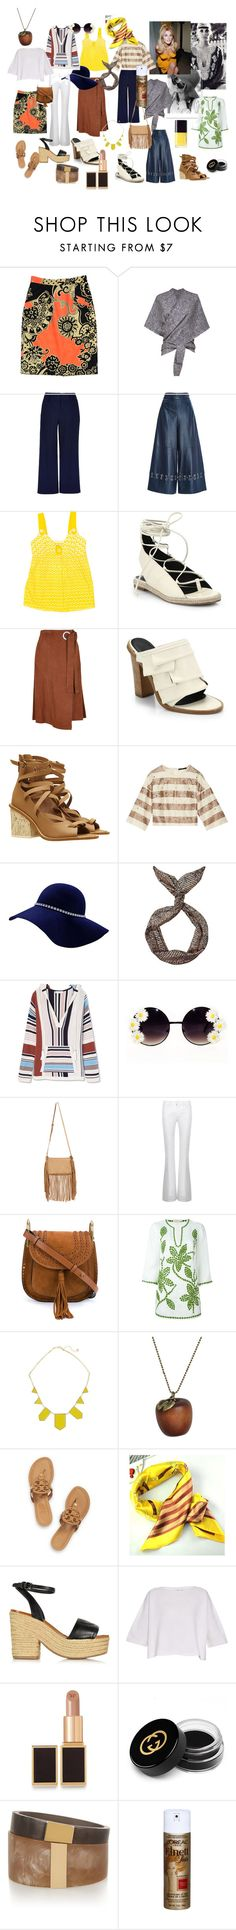 Sharon Tate by jenny-ragnwaldh on Polyvore featuring Tory Burch, Helmut Lang, TIBI, Laggo, Chloé, Isabel Marant, Emi Jewellery, House of Harlow 1960, Tom Ford and Gucci Bohemian Look, Modern Bohemian, Sharon Tate, Helmut Lang, Isabel Marant, Tom Ford, Tory Burch, Gucci, Jewellery